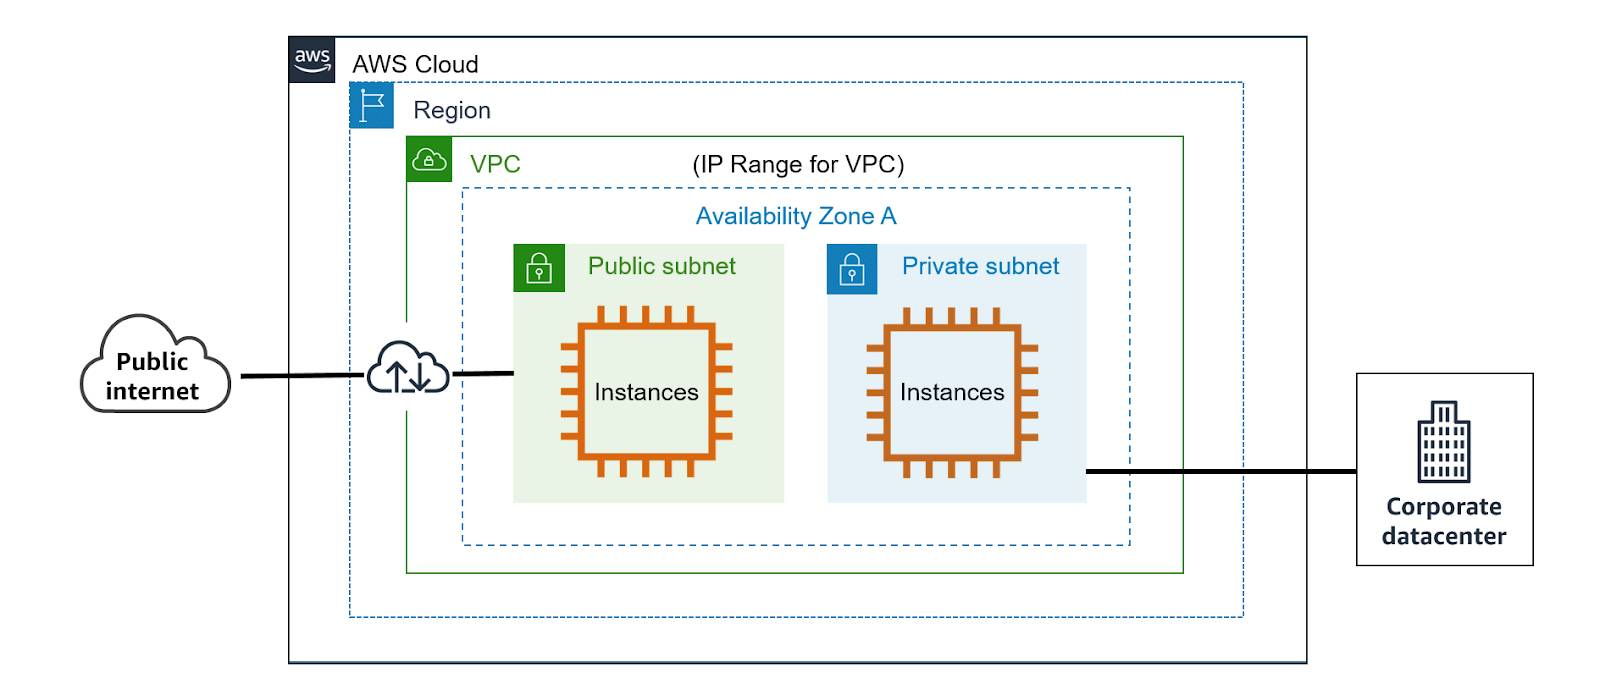 The public Internet connecting to a public subnet and a corporate datacenter connecting to a private subnet, both within a VPC inside an AWS Region